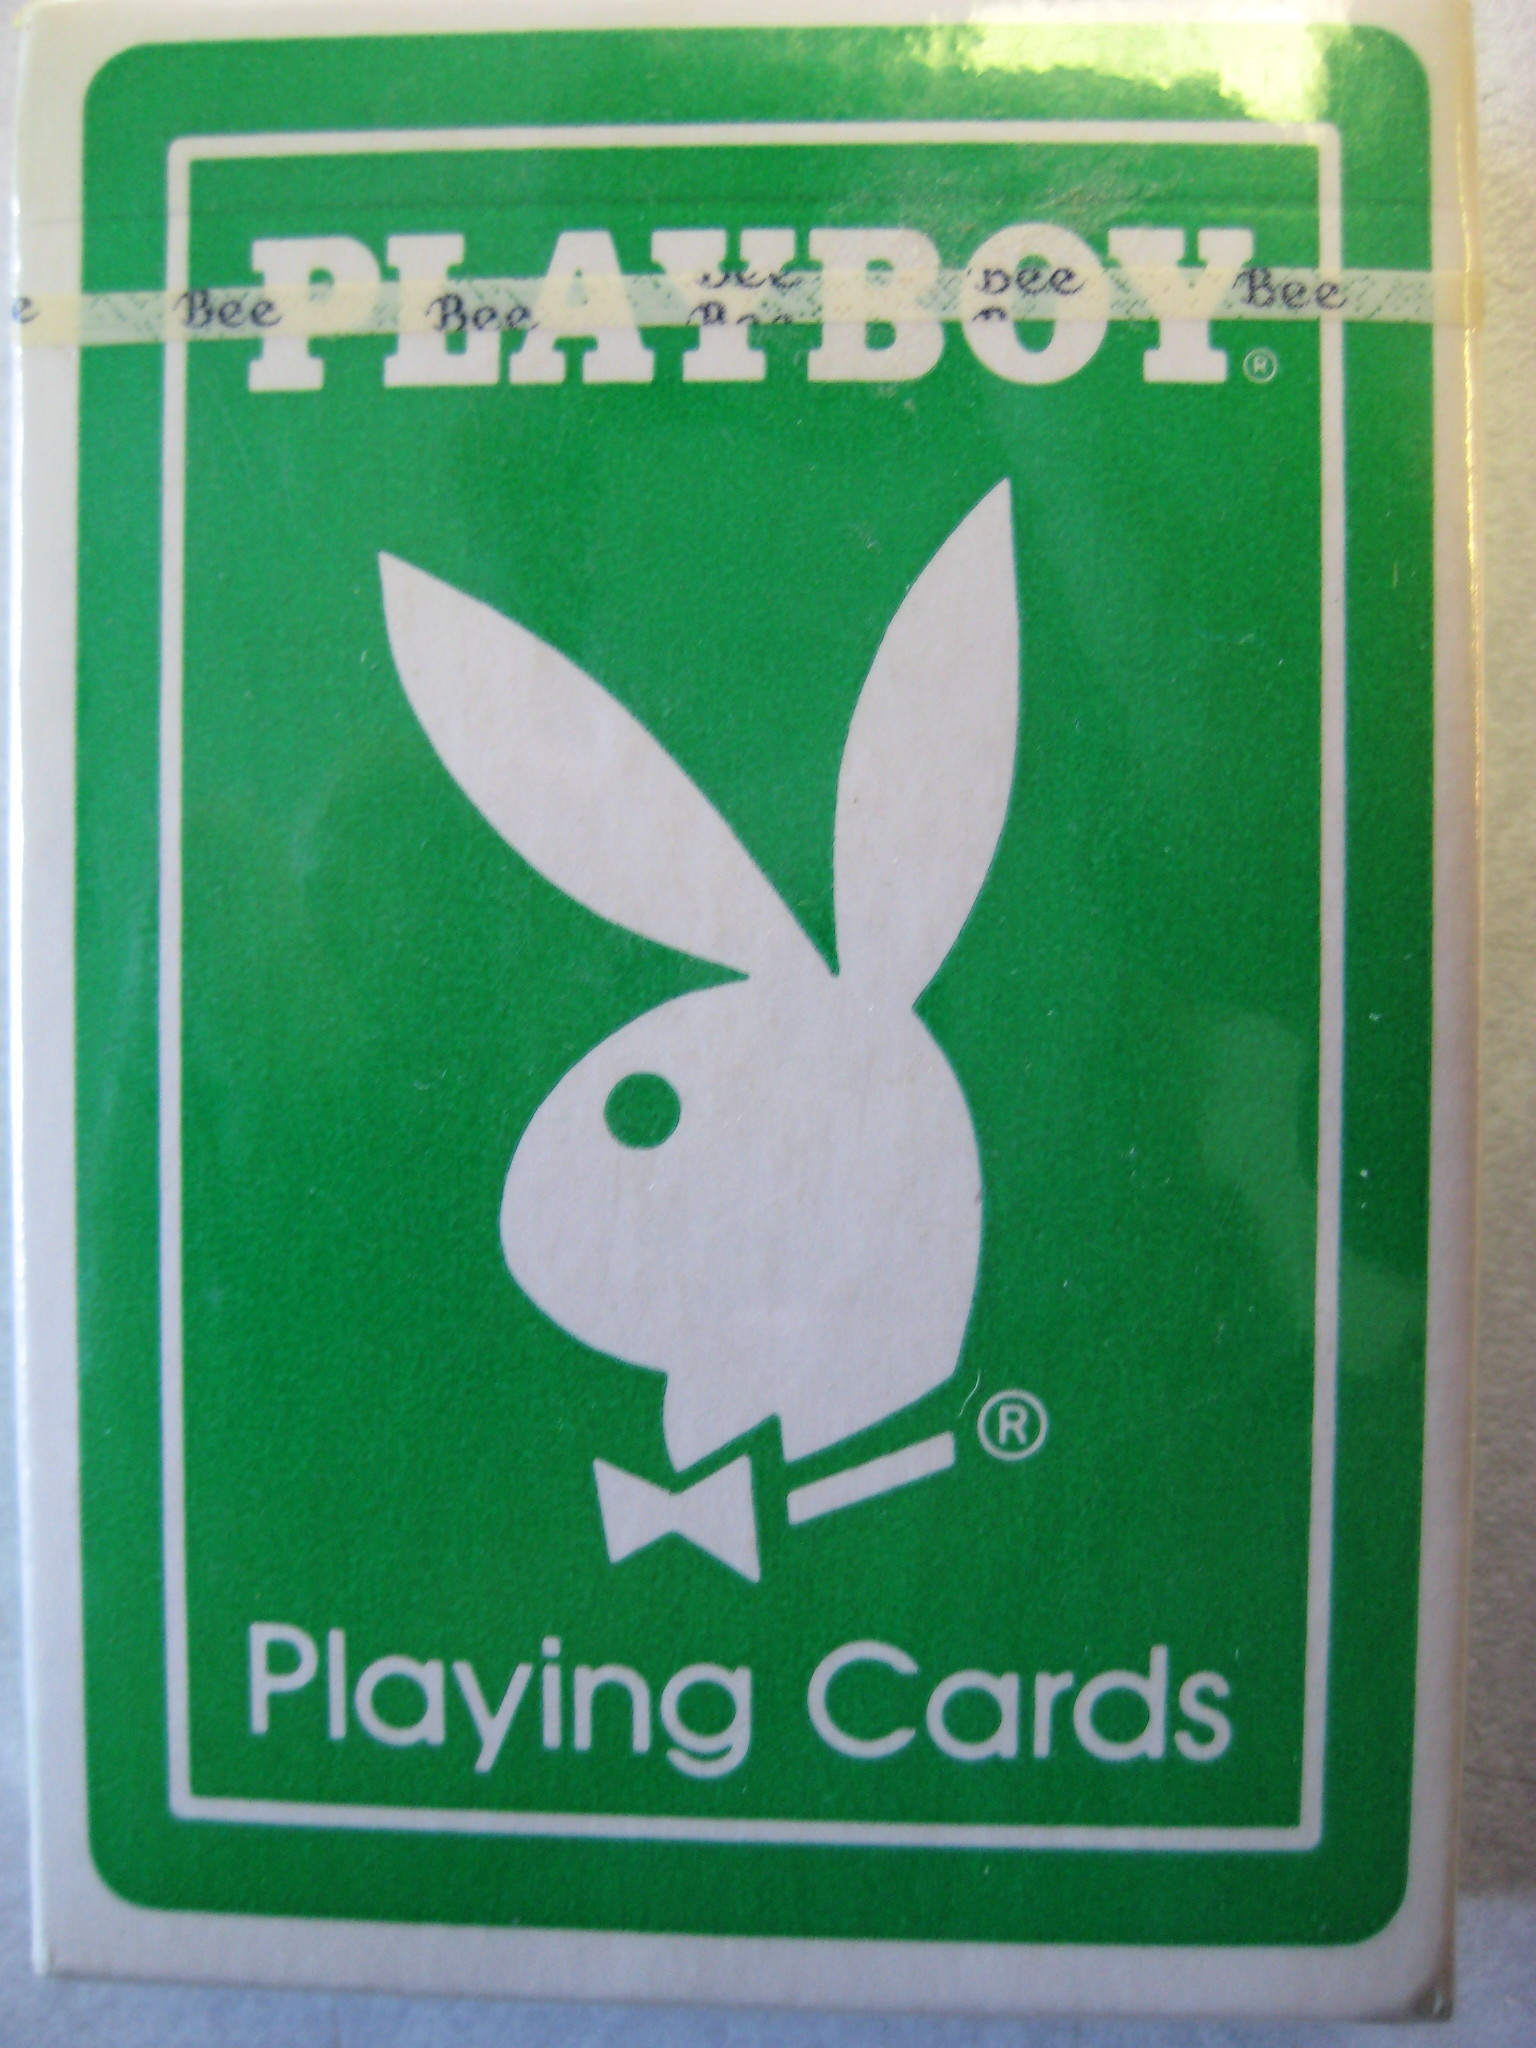 Playboy Atlantic City Rare Green Deck Playing Cards